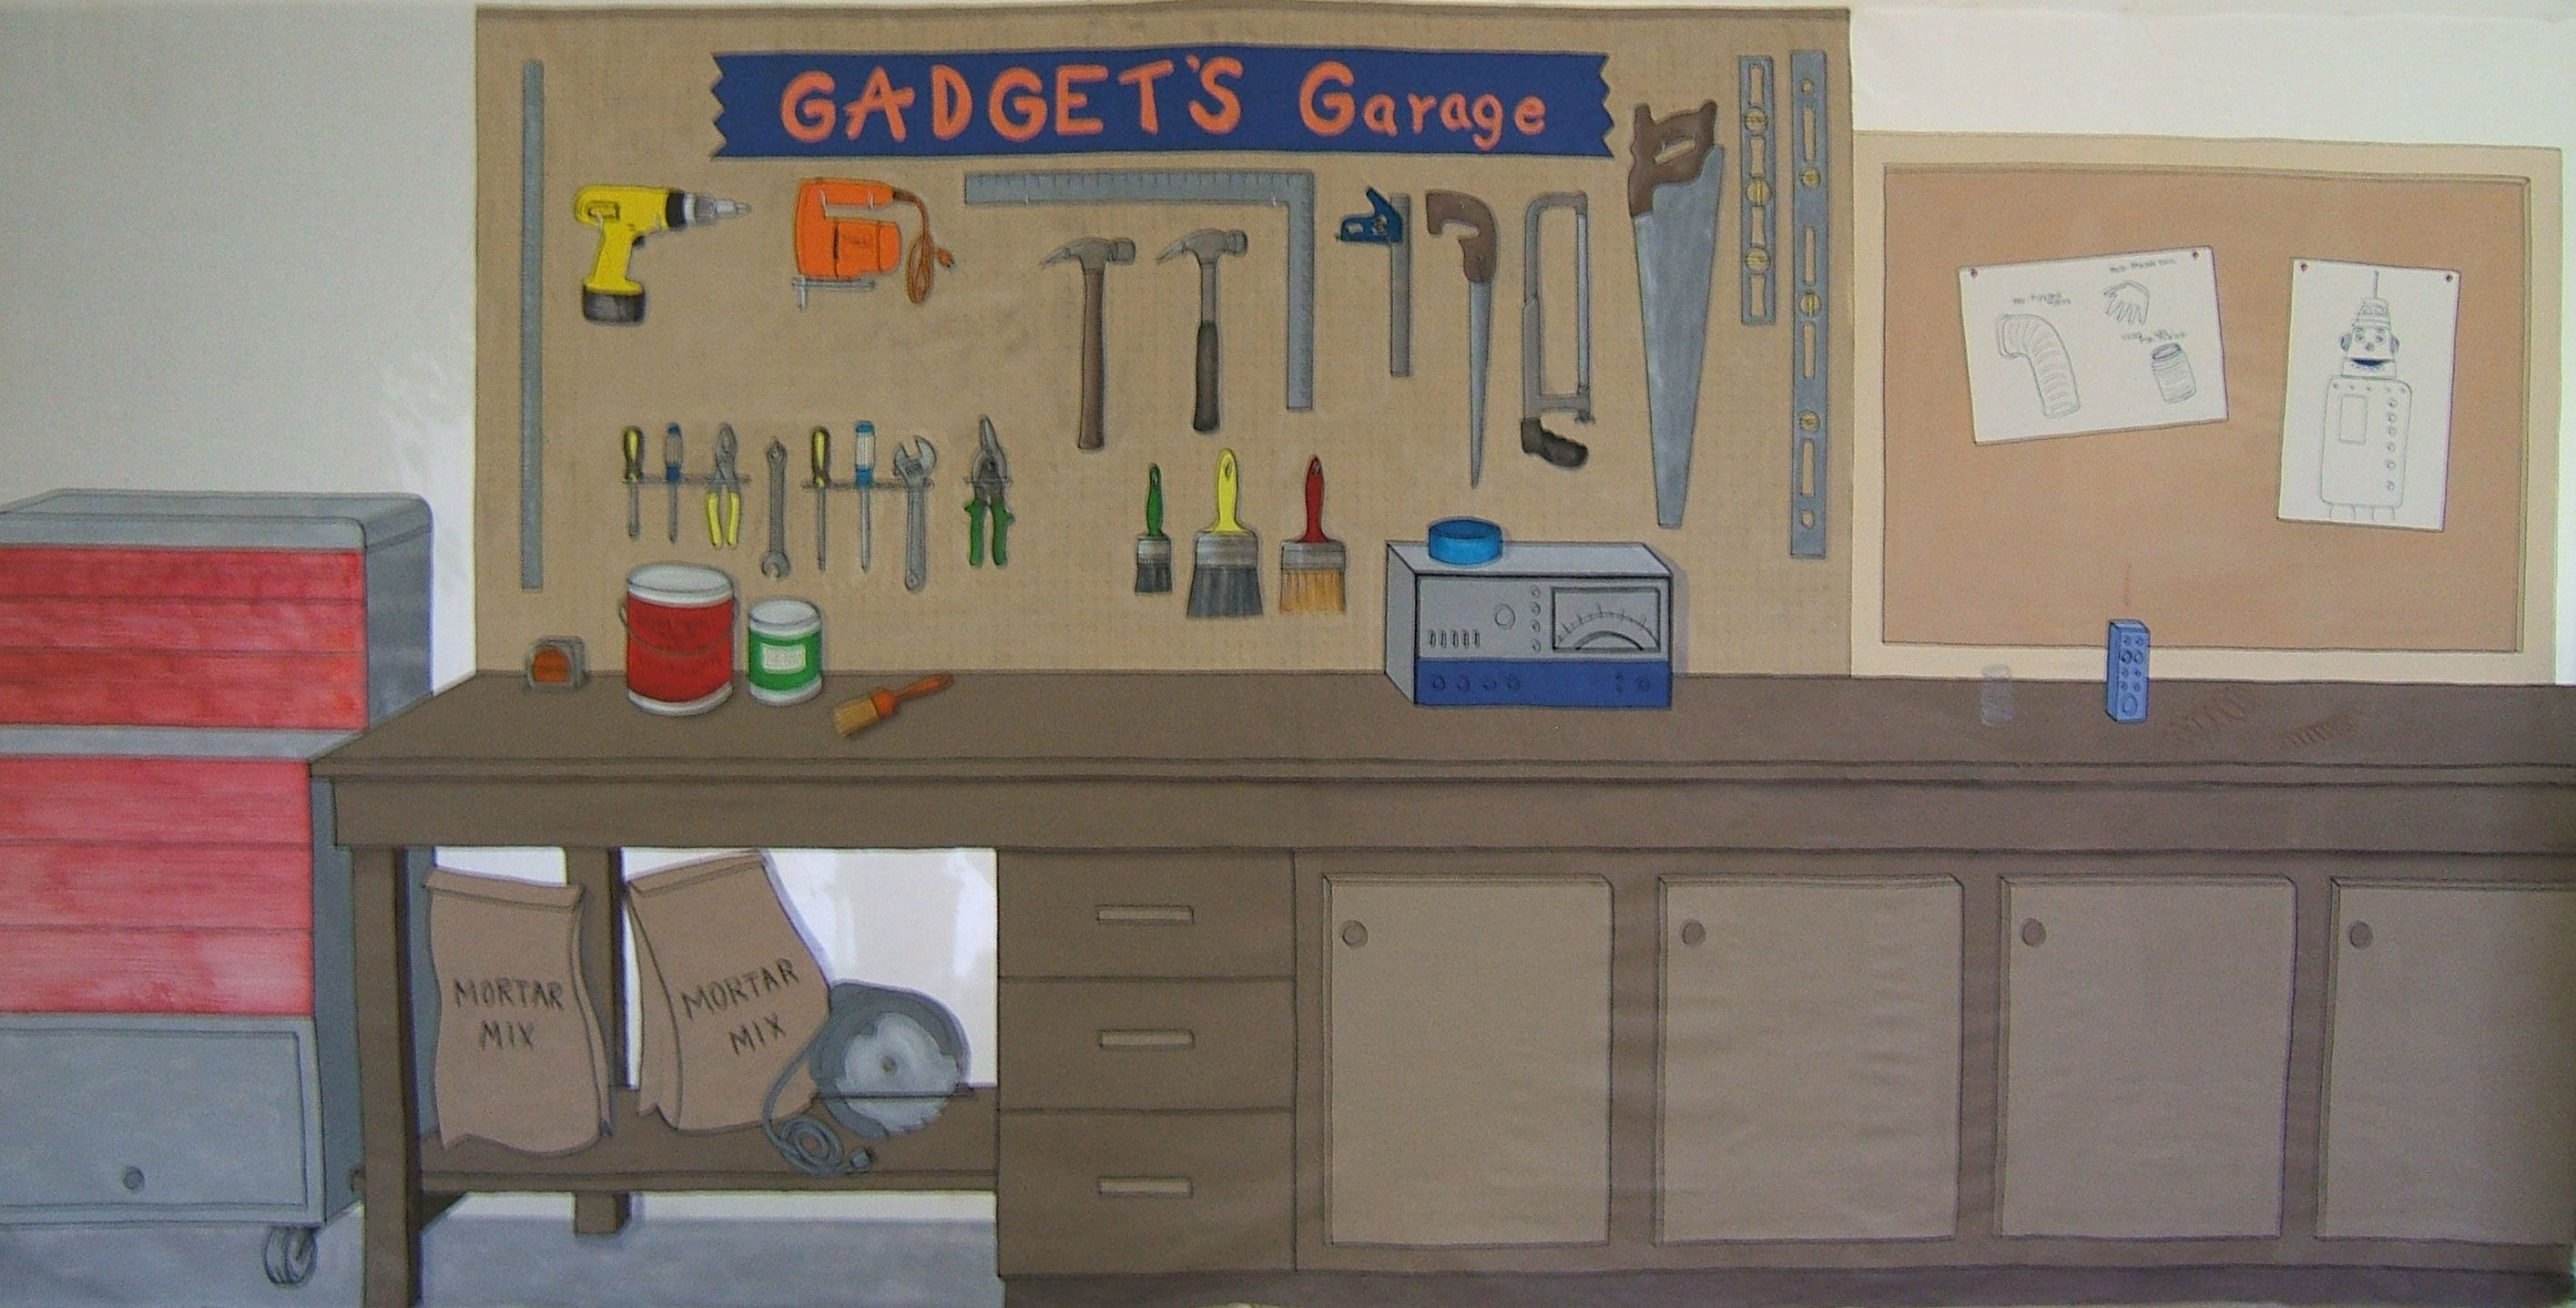 Garage Gadgets pinkendra singer on gadgets garage- | pinterest